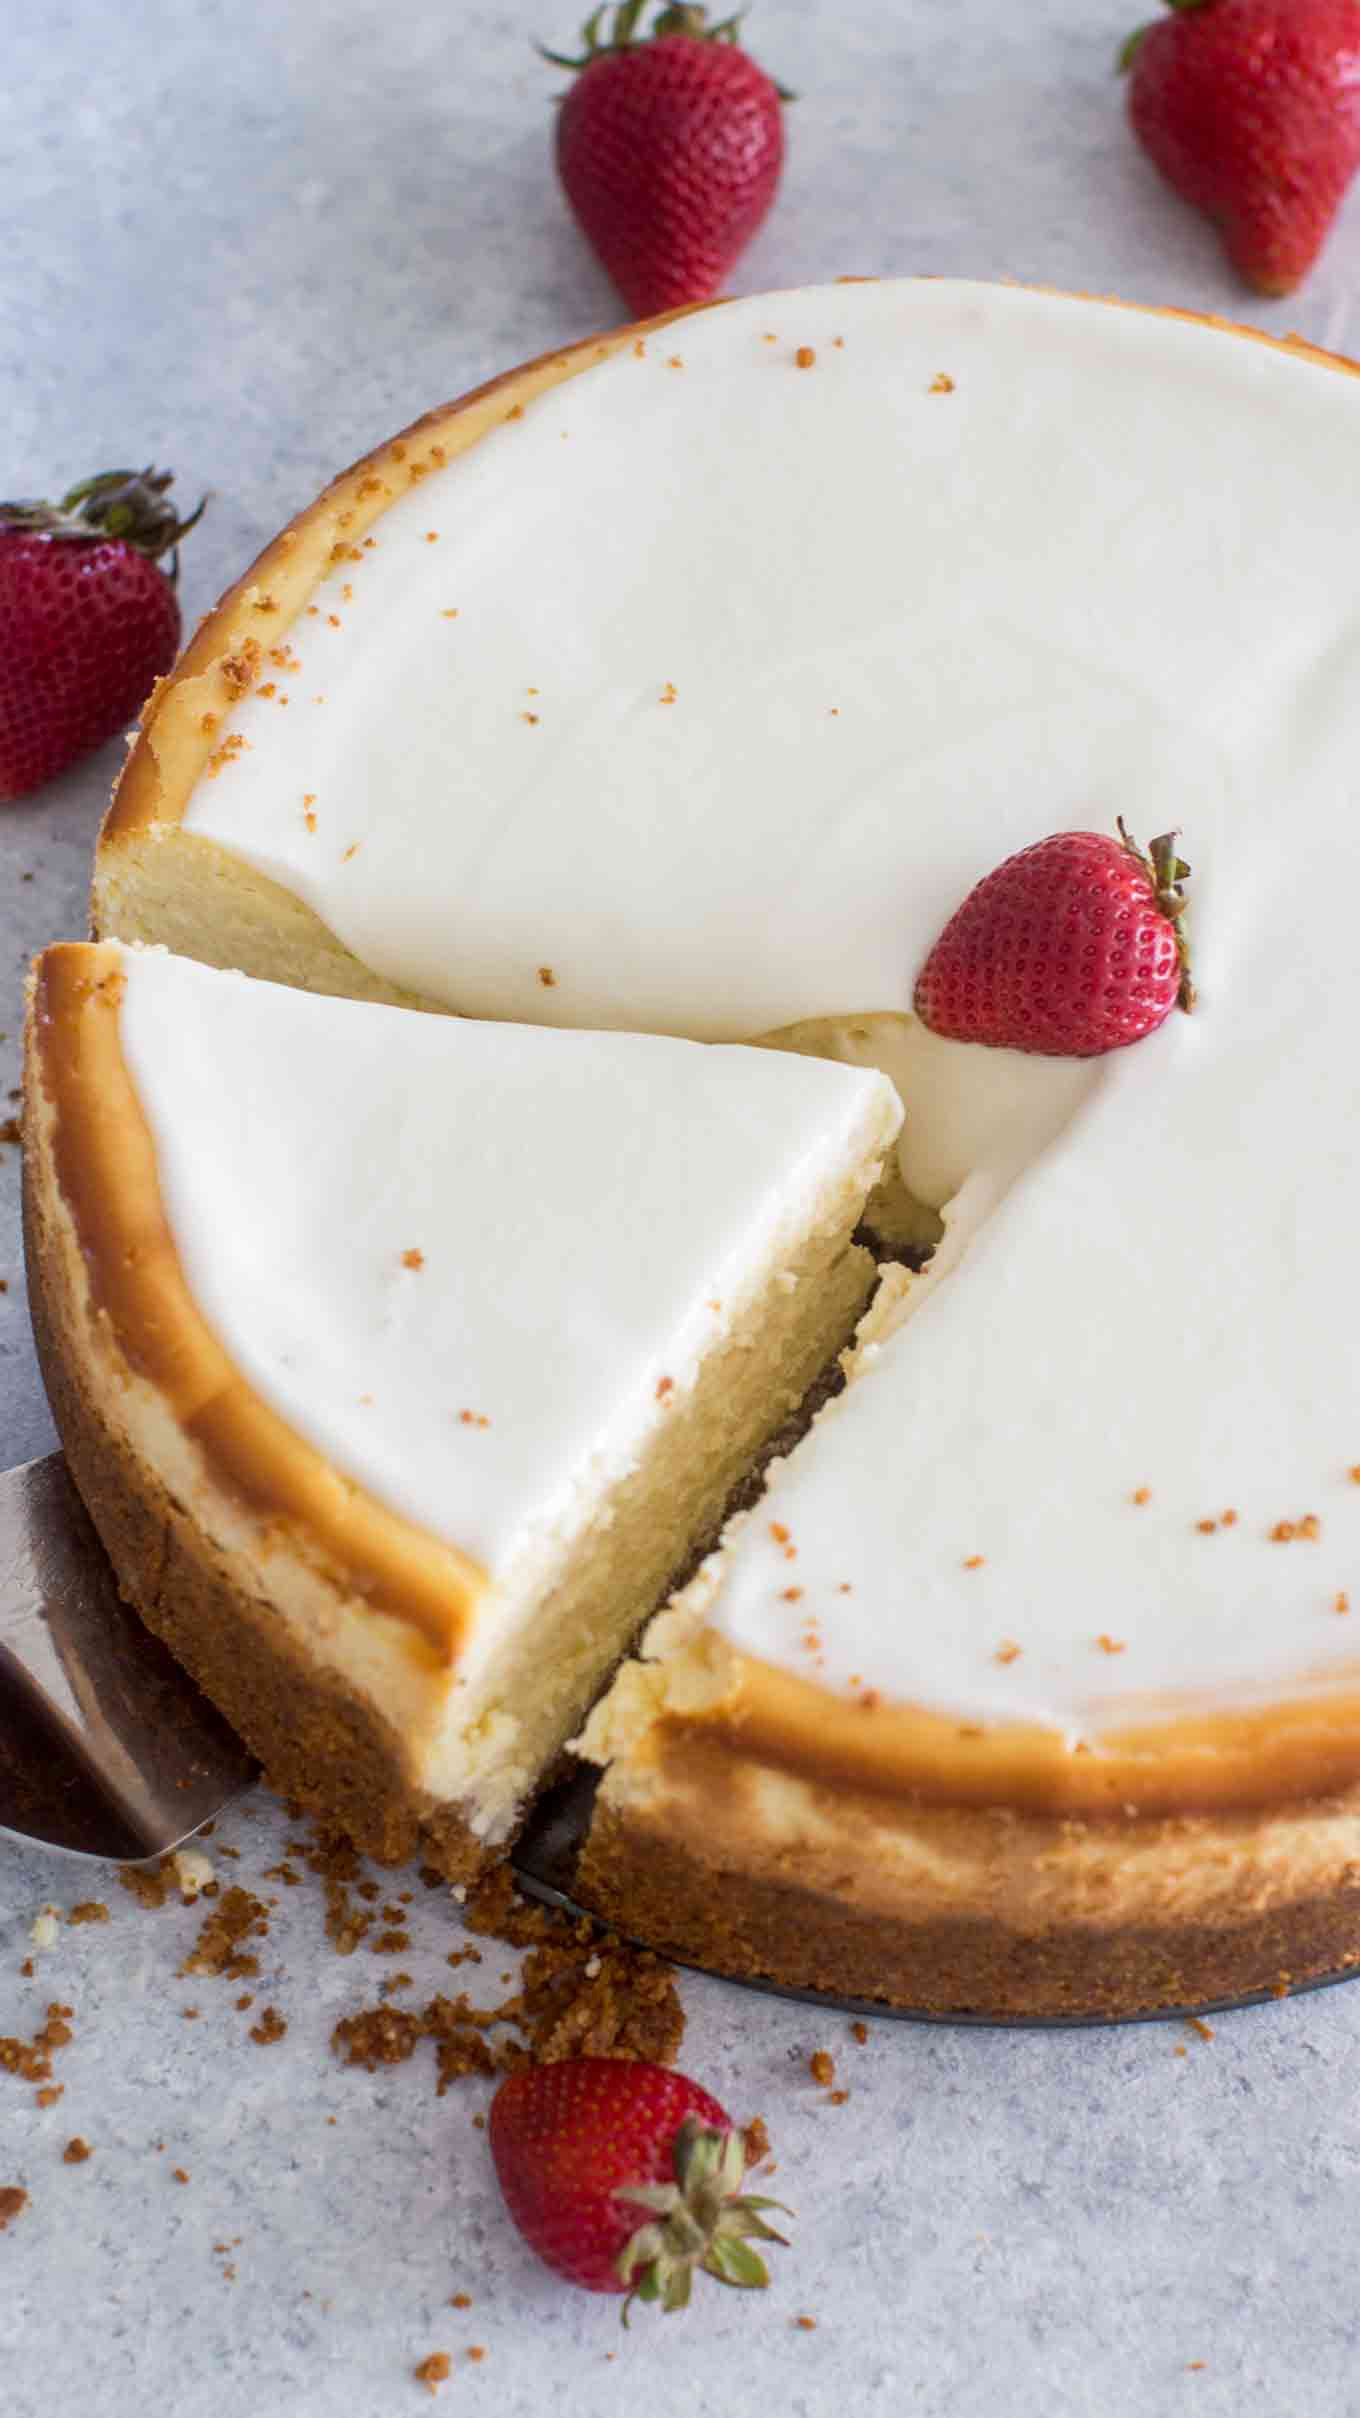 Creamy Cheesecake Recipe  Cheesecake Factory Original Cheesecake Copycat Recipe